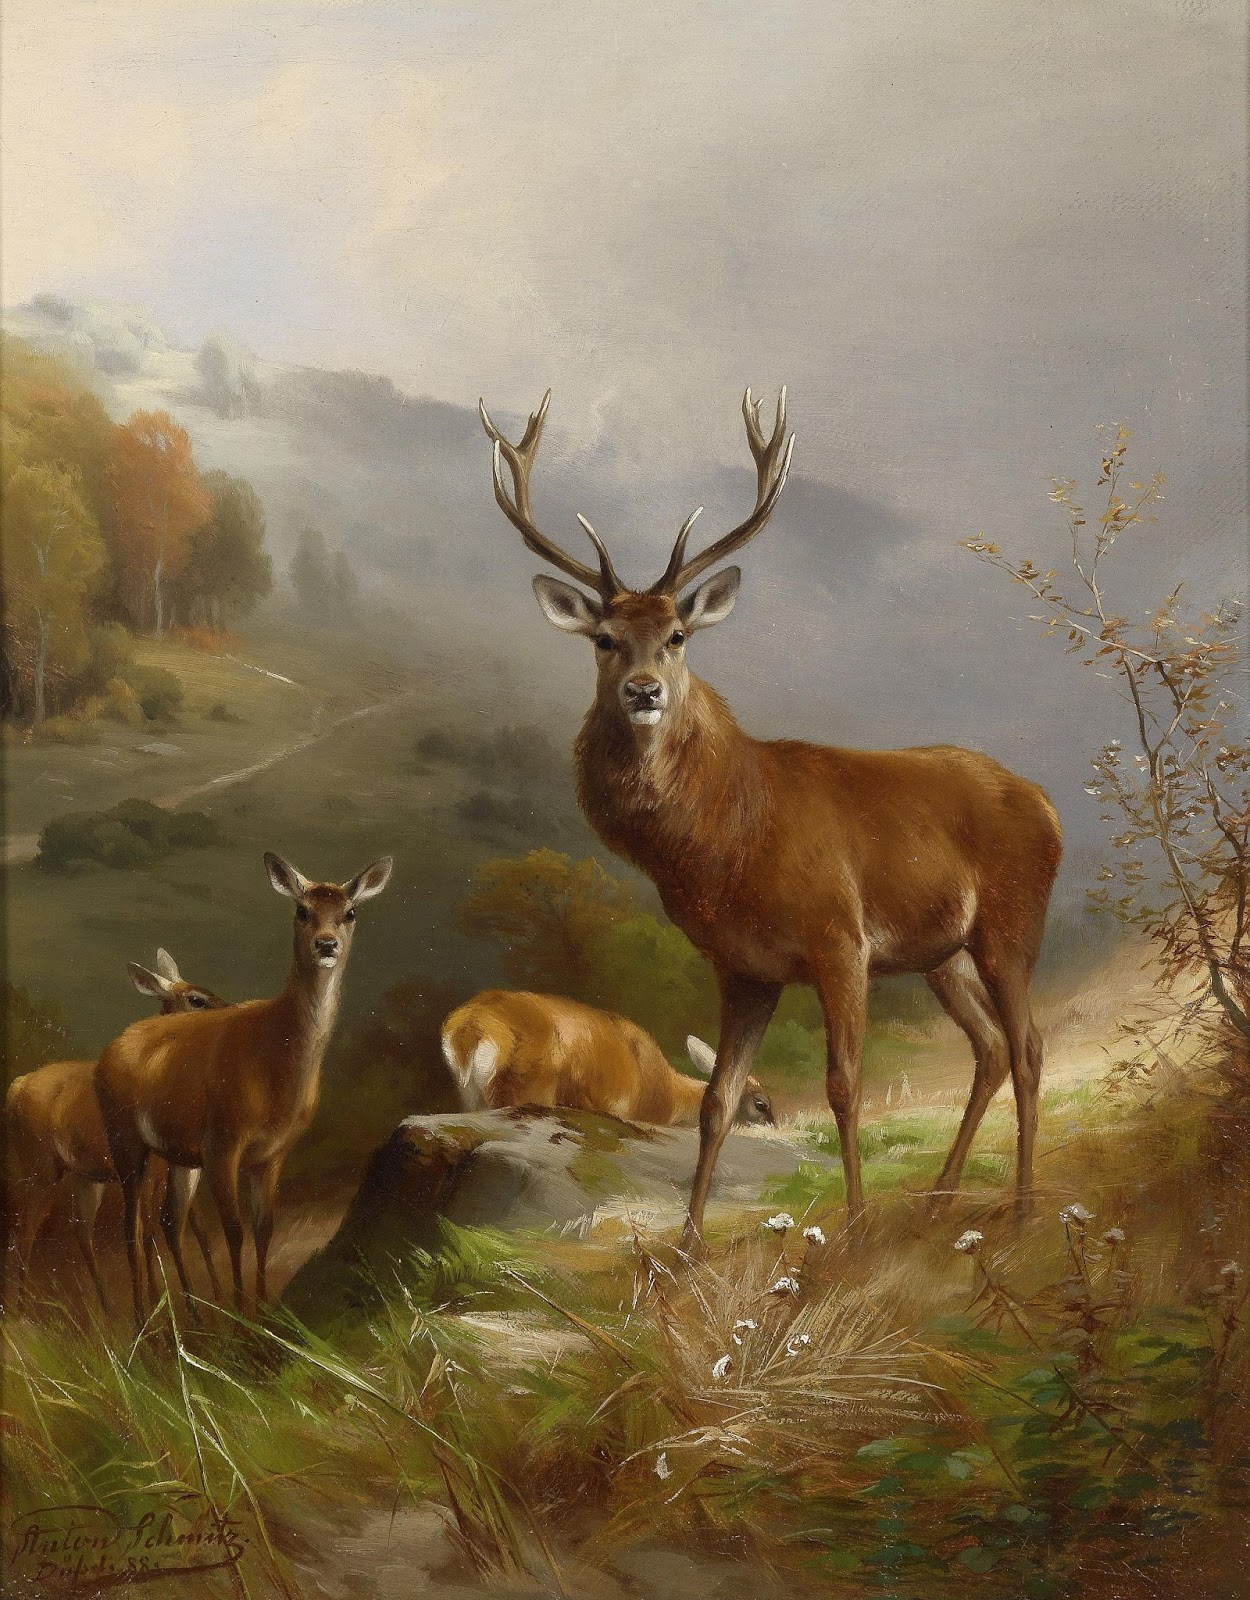 A painting of a herd of deer